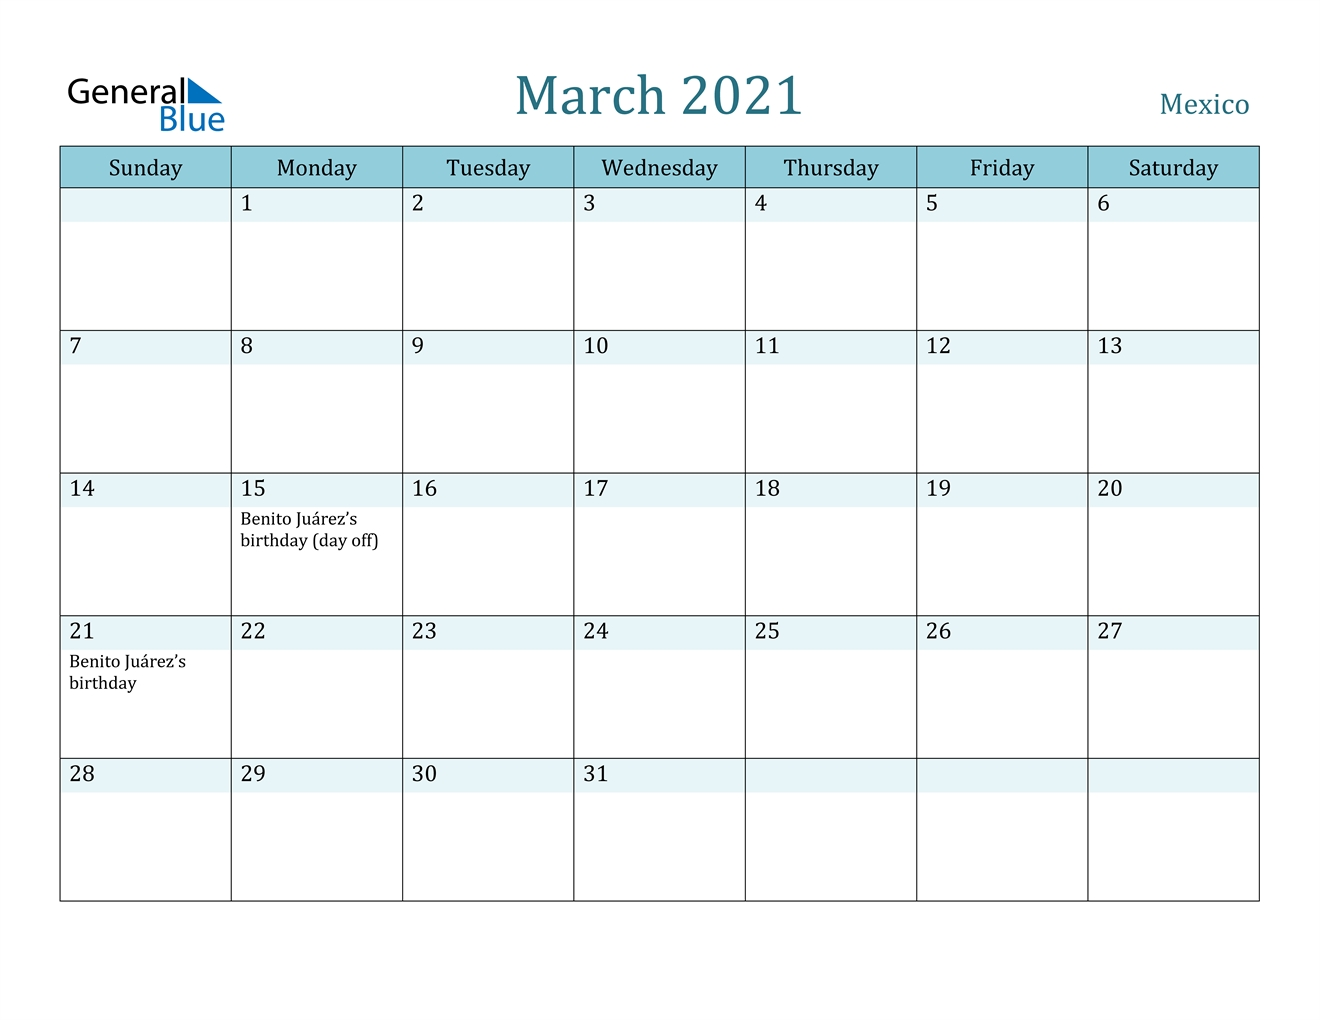 Mexico March 2021 Calendar With Holidays